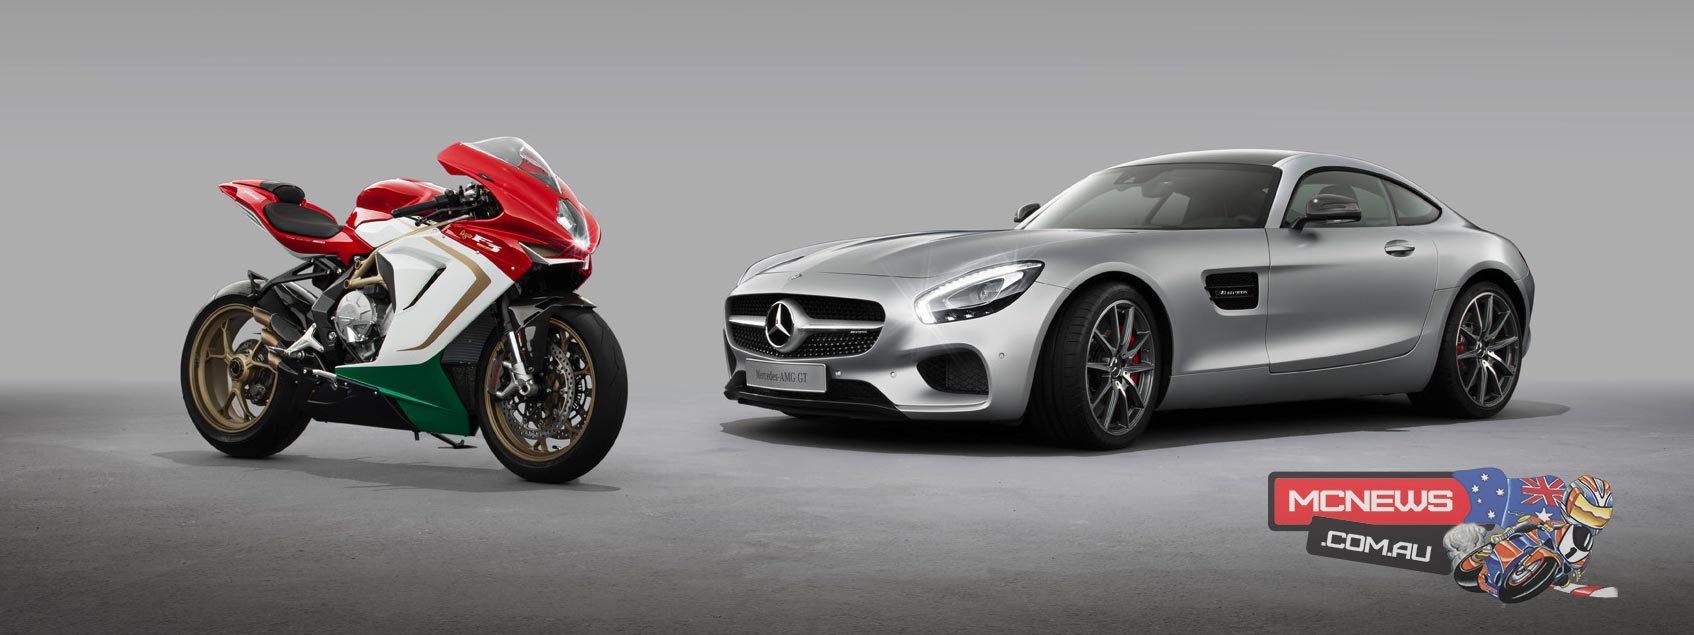 Mercedes-AMG GmbH will acquire a 25% interest in MV Agusta Motor S.p.A